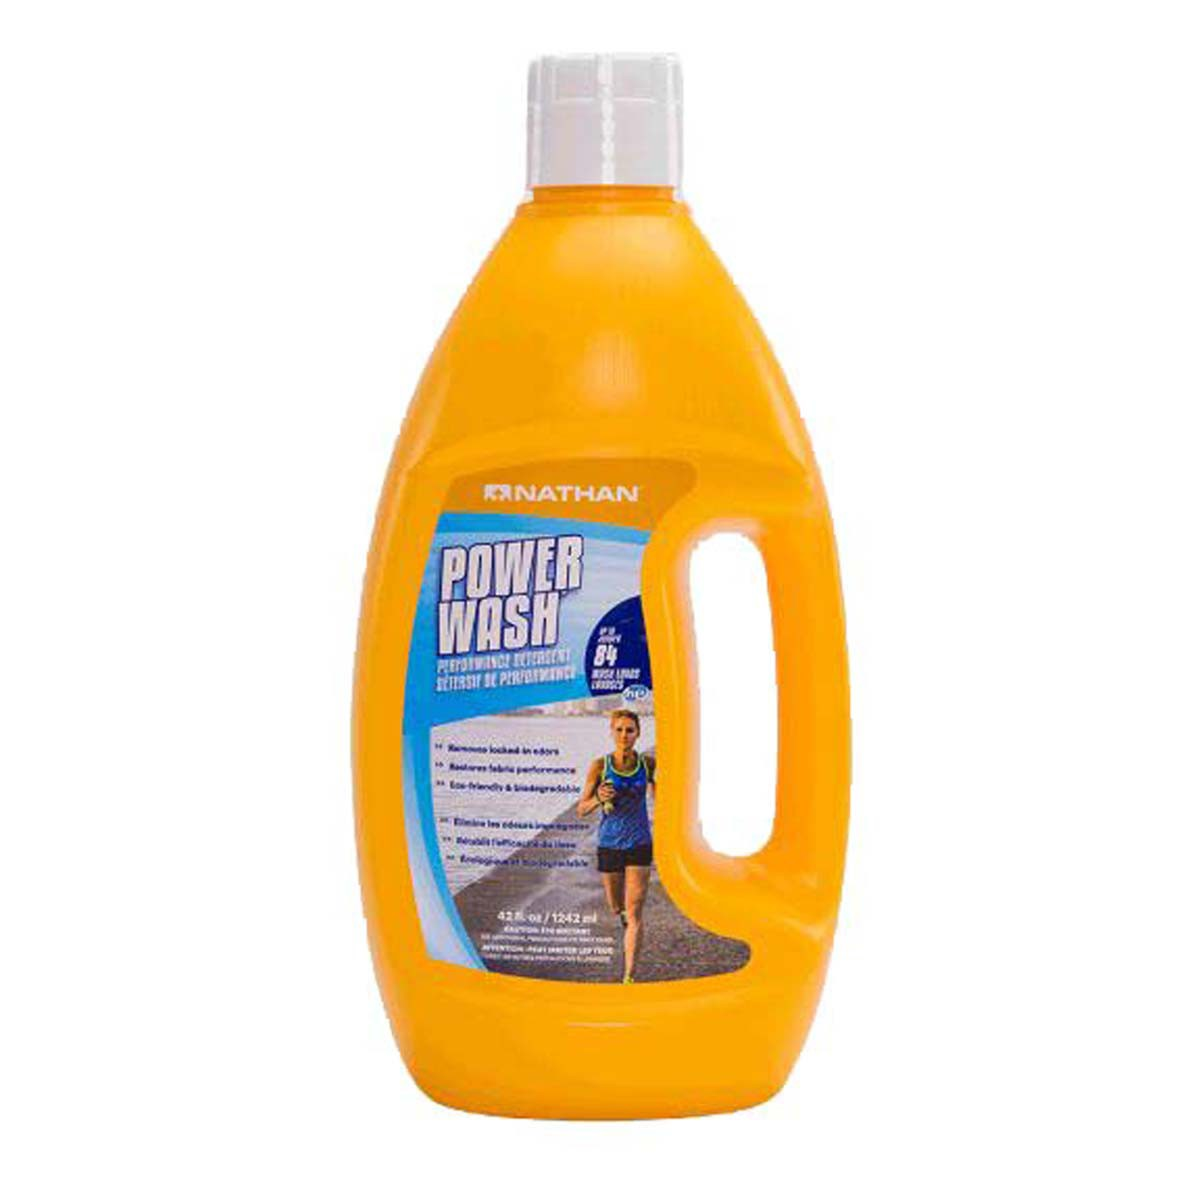 Power Wash™ Performance Laundry Detergent (42 oz)